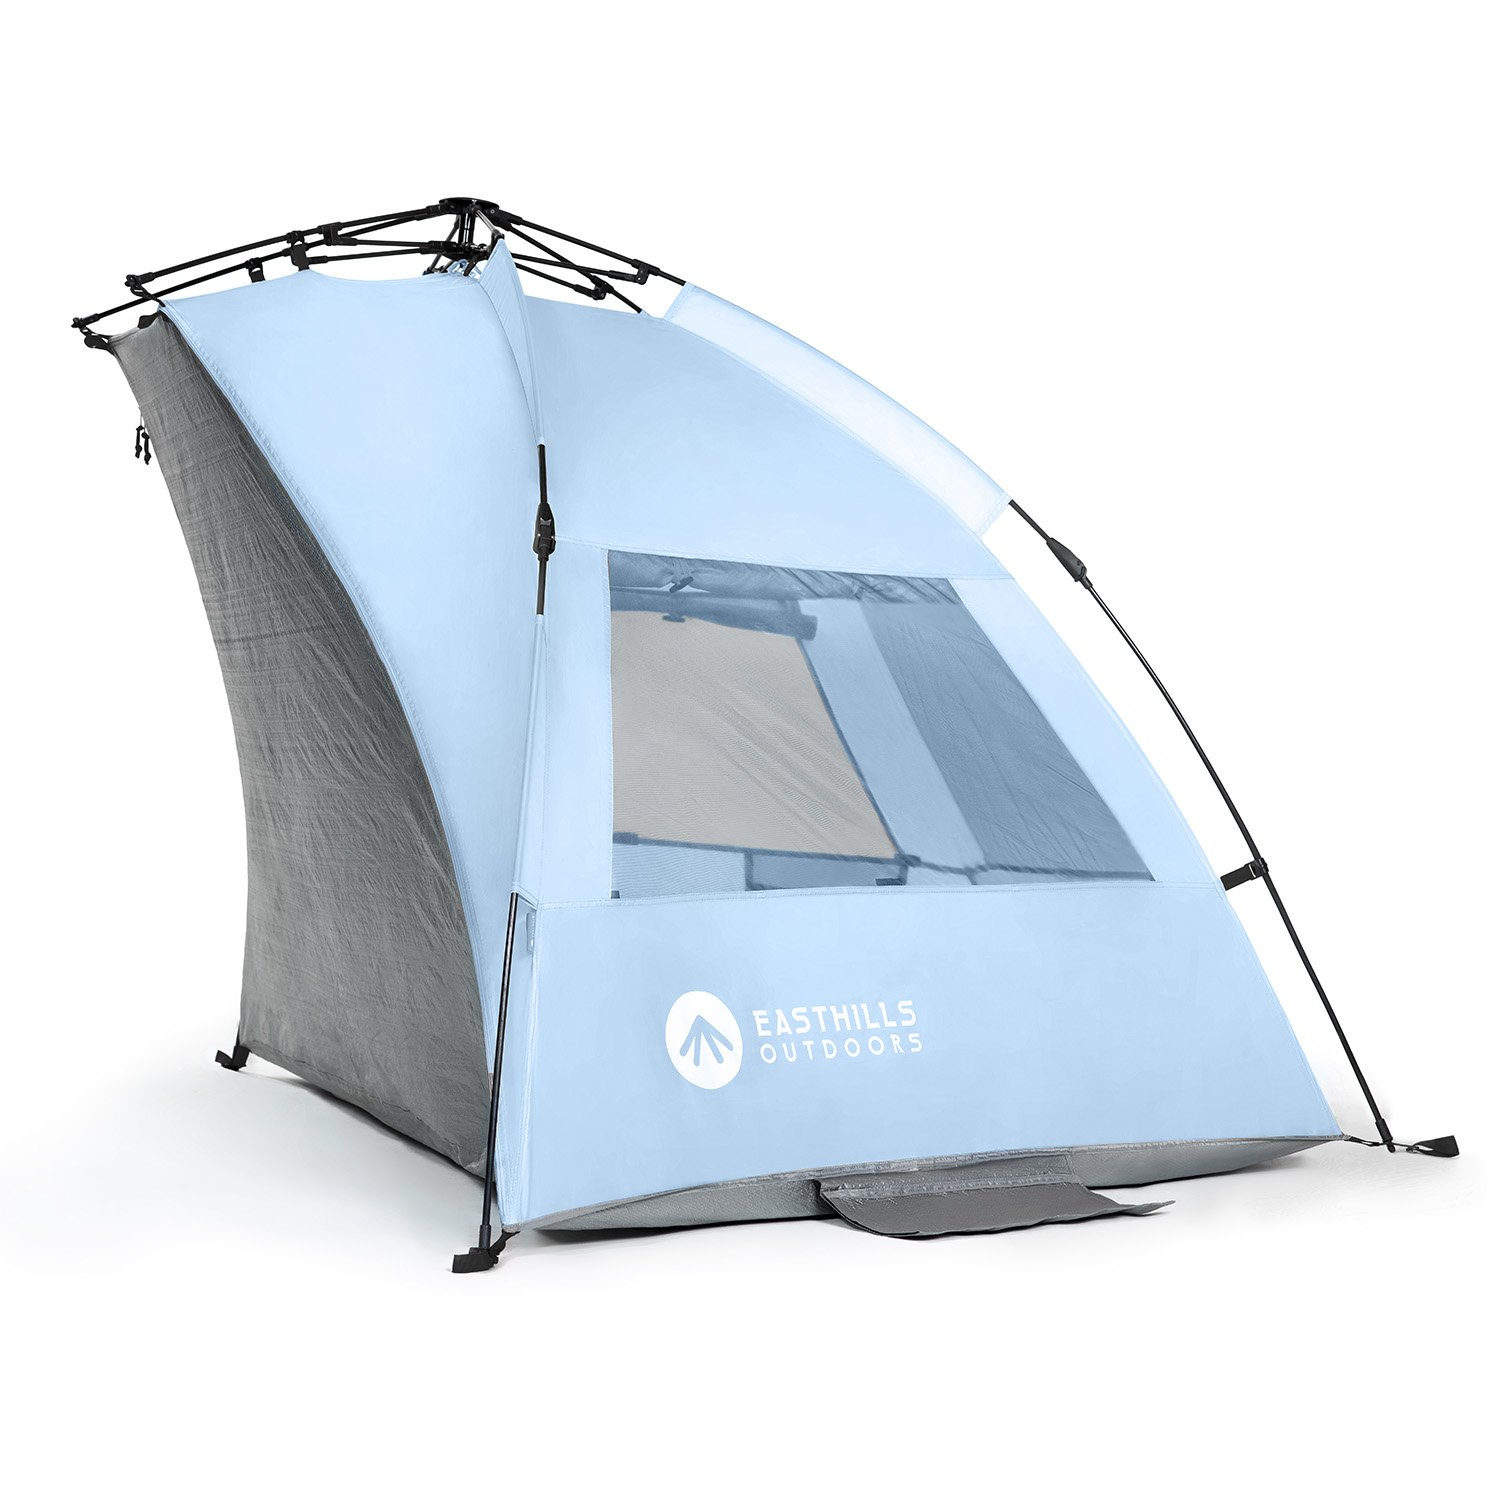 Easthills Outdoors Easy Up Beach Tent Sun Shelter - Extended Zippered Porch Included  sc 1 st  Amazon.com : small pop up beach tent - memphite.com